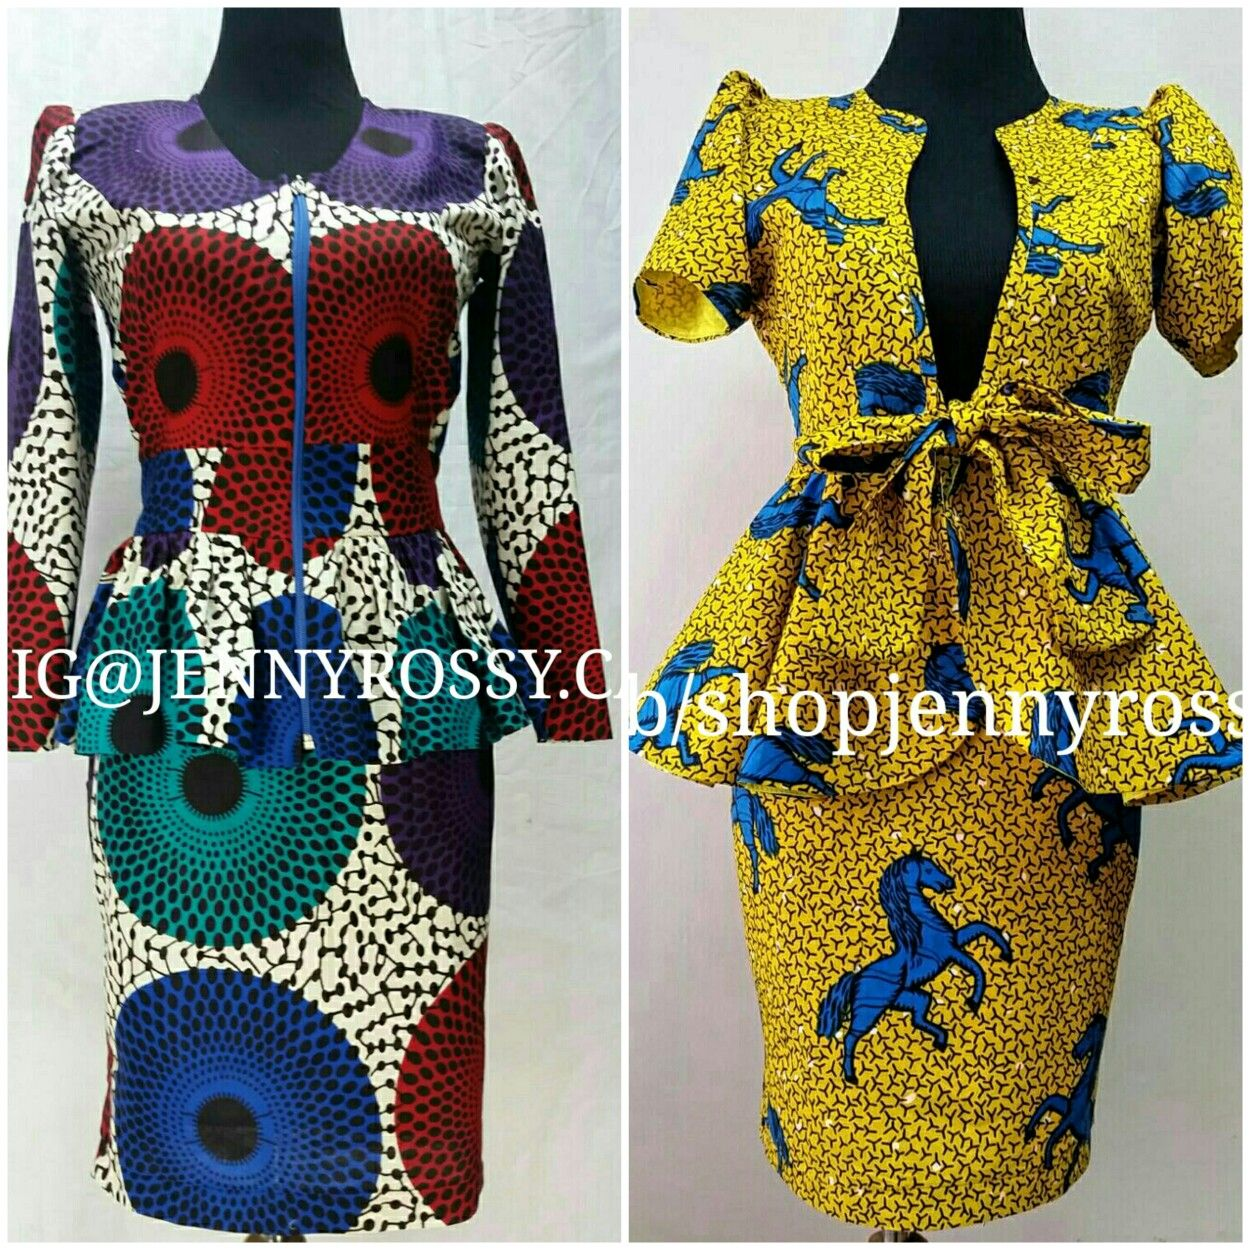 #africanprint #Africanfashion #africantop #africanblouse #peplumtop #afrostyle #Africanwomen #Afrochic #afroqueen #longsleeves #africanclothing #etsyshop #etsyfind #etsystore #etsyseller #differencemakesus @etsy  #JRclothing   https://www.etsy.com/ca/listing/484292433/sales-african-print-mini-skirt-and